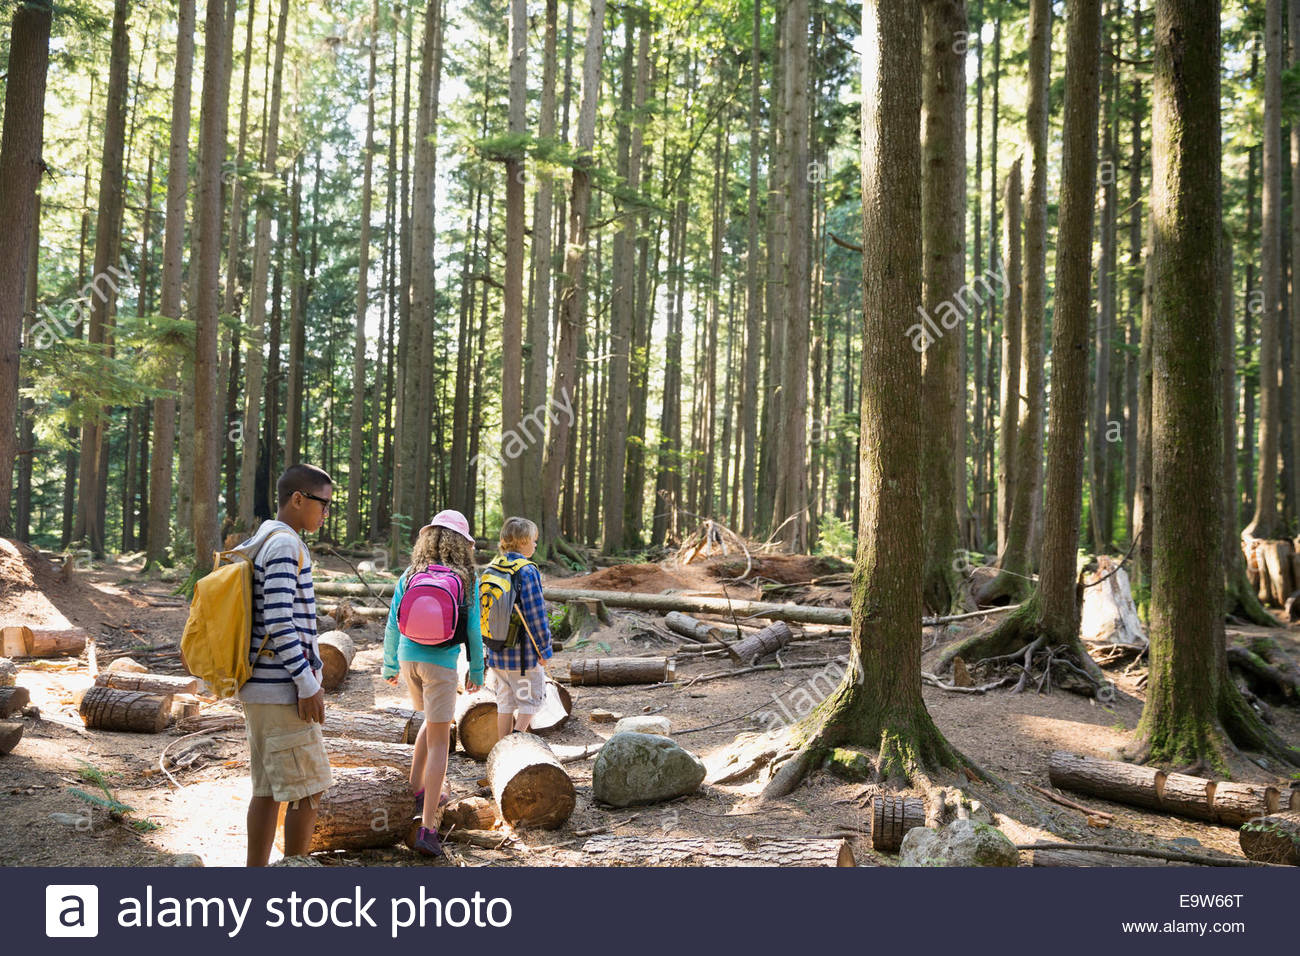 Boys and girl hiking in woods - Stock Image